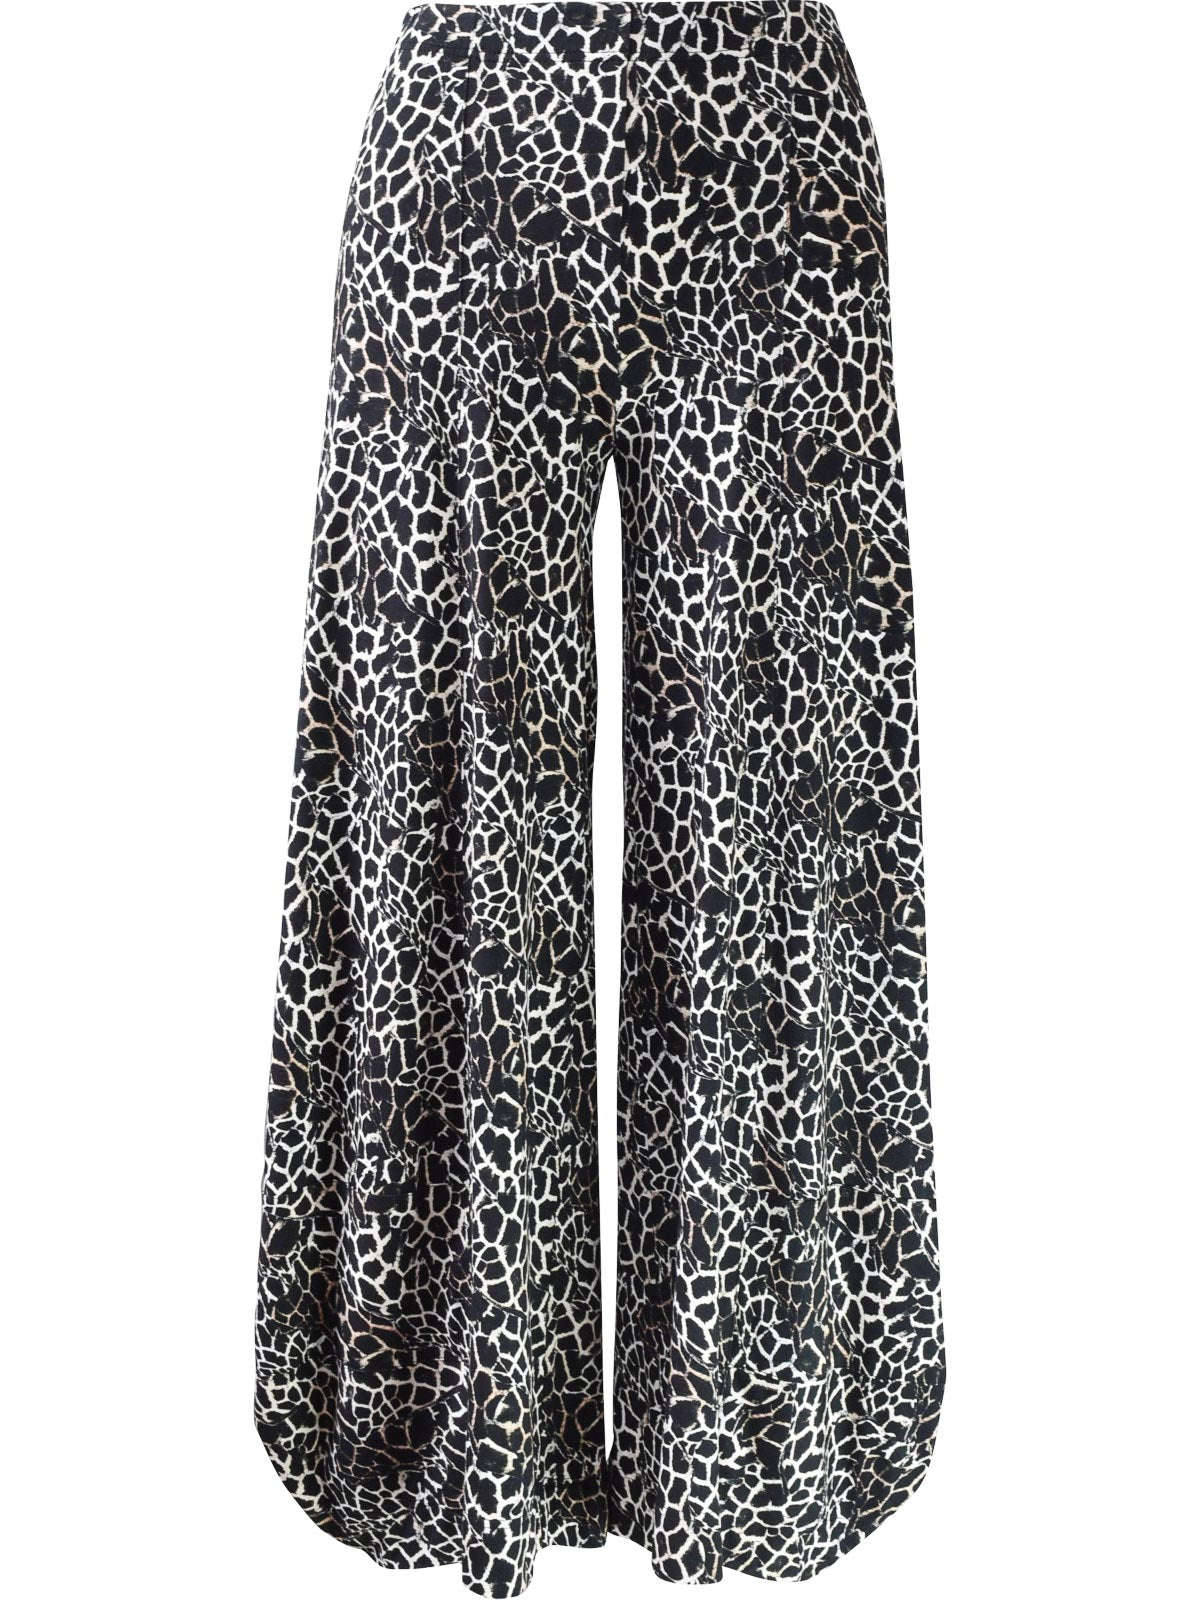 Q'Neel Crackle Print Lantern Pant, Black/Tan